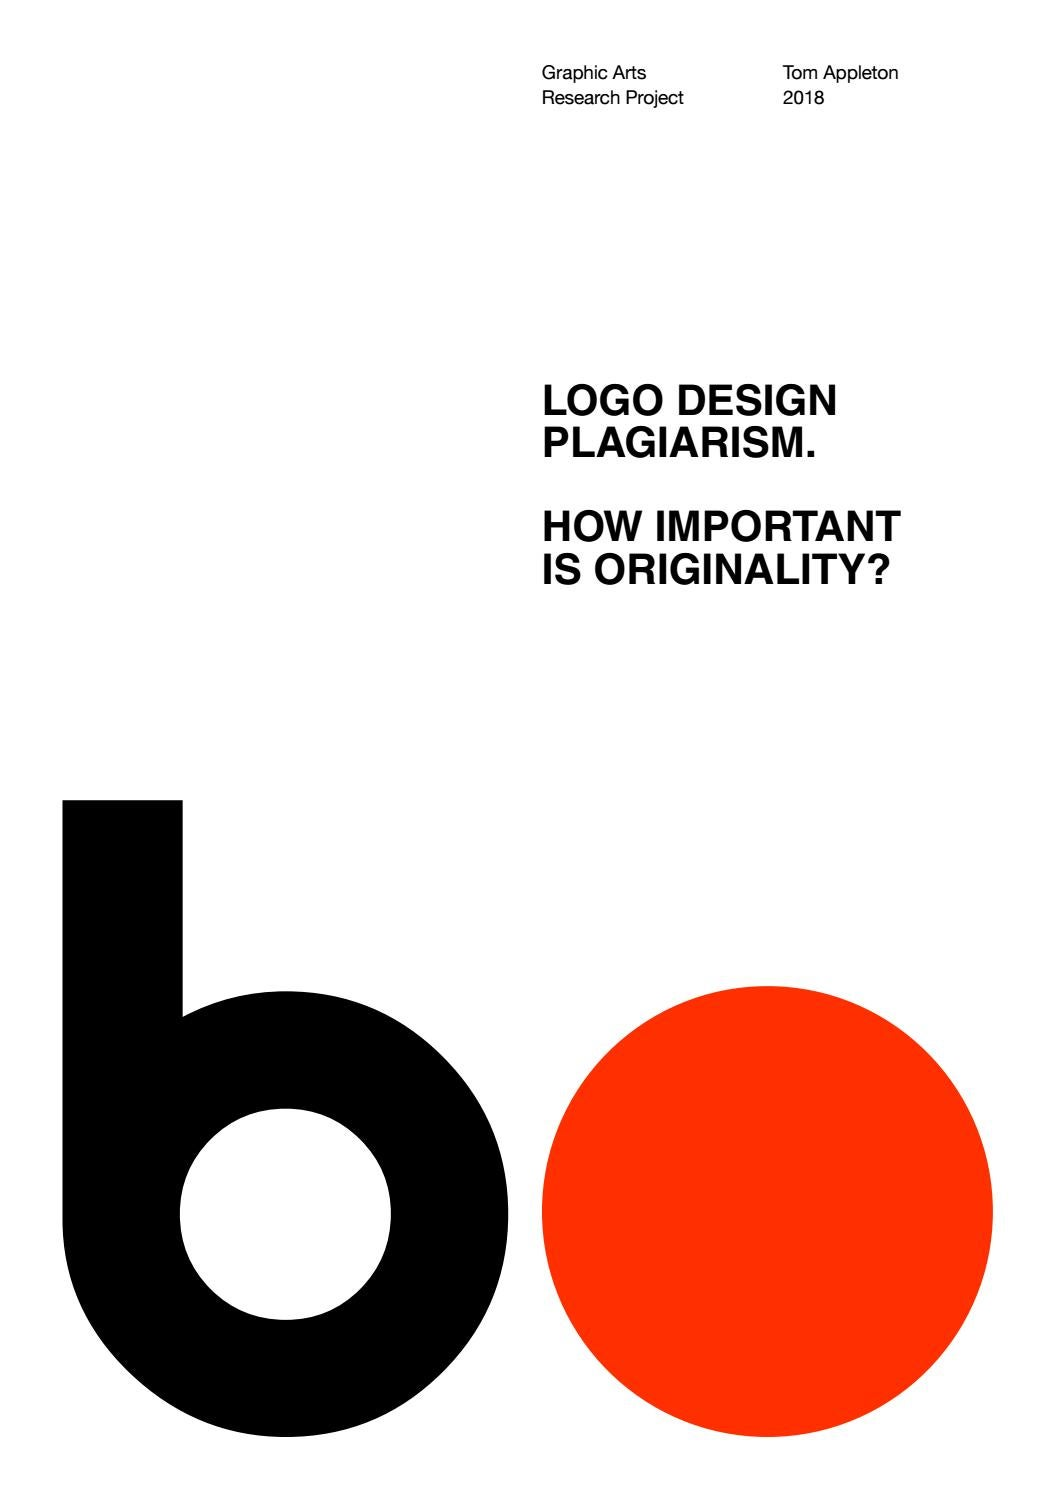 Logo design plagarism tom appleton by tomappletondesign - issuu